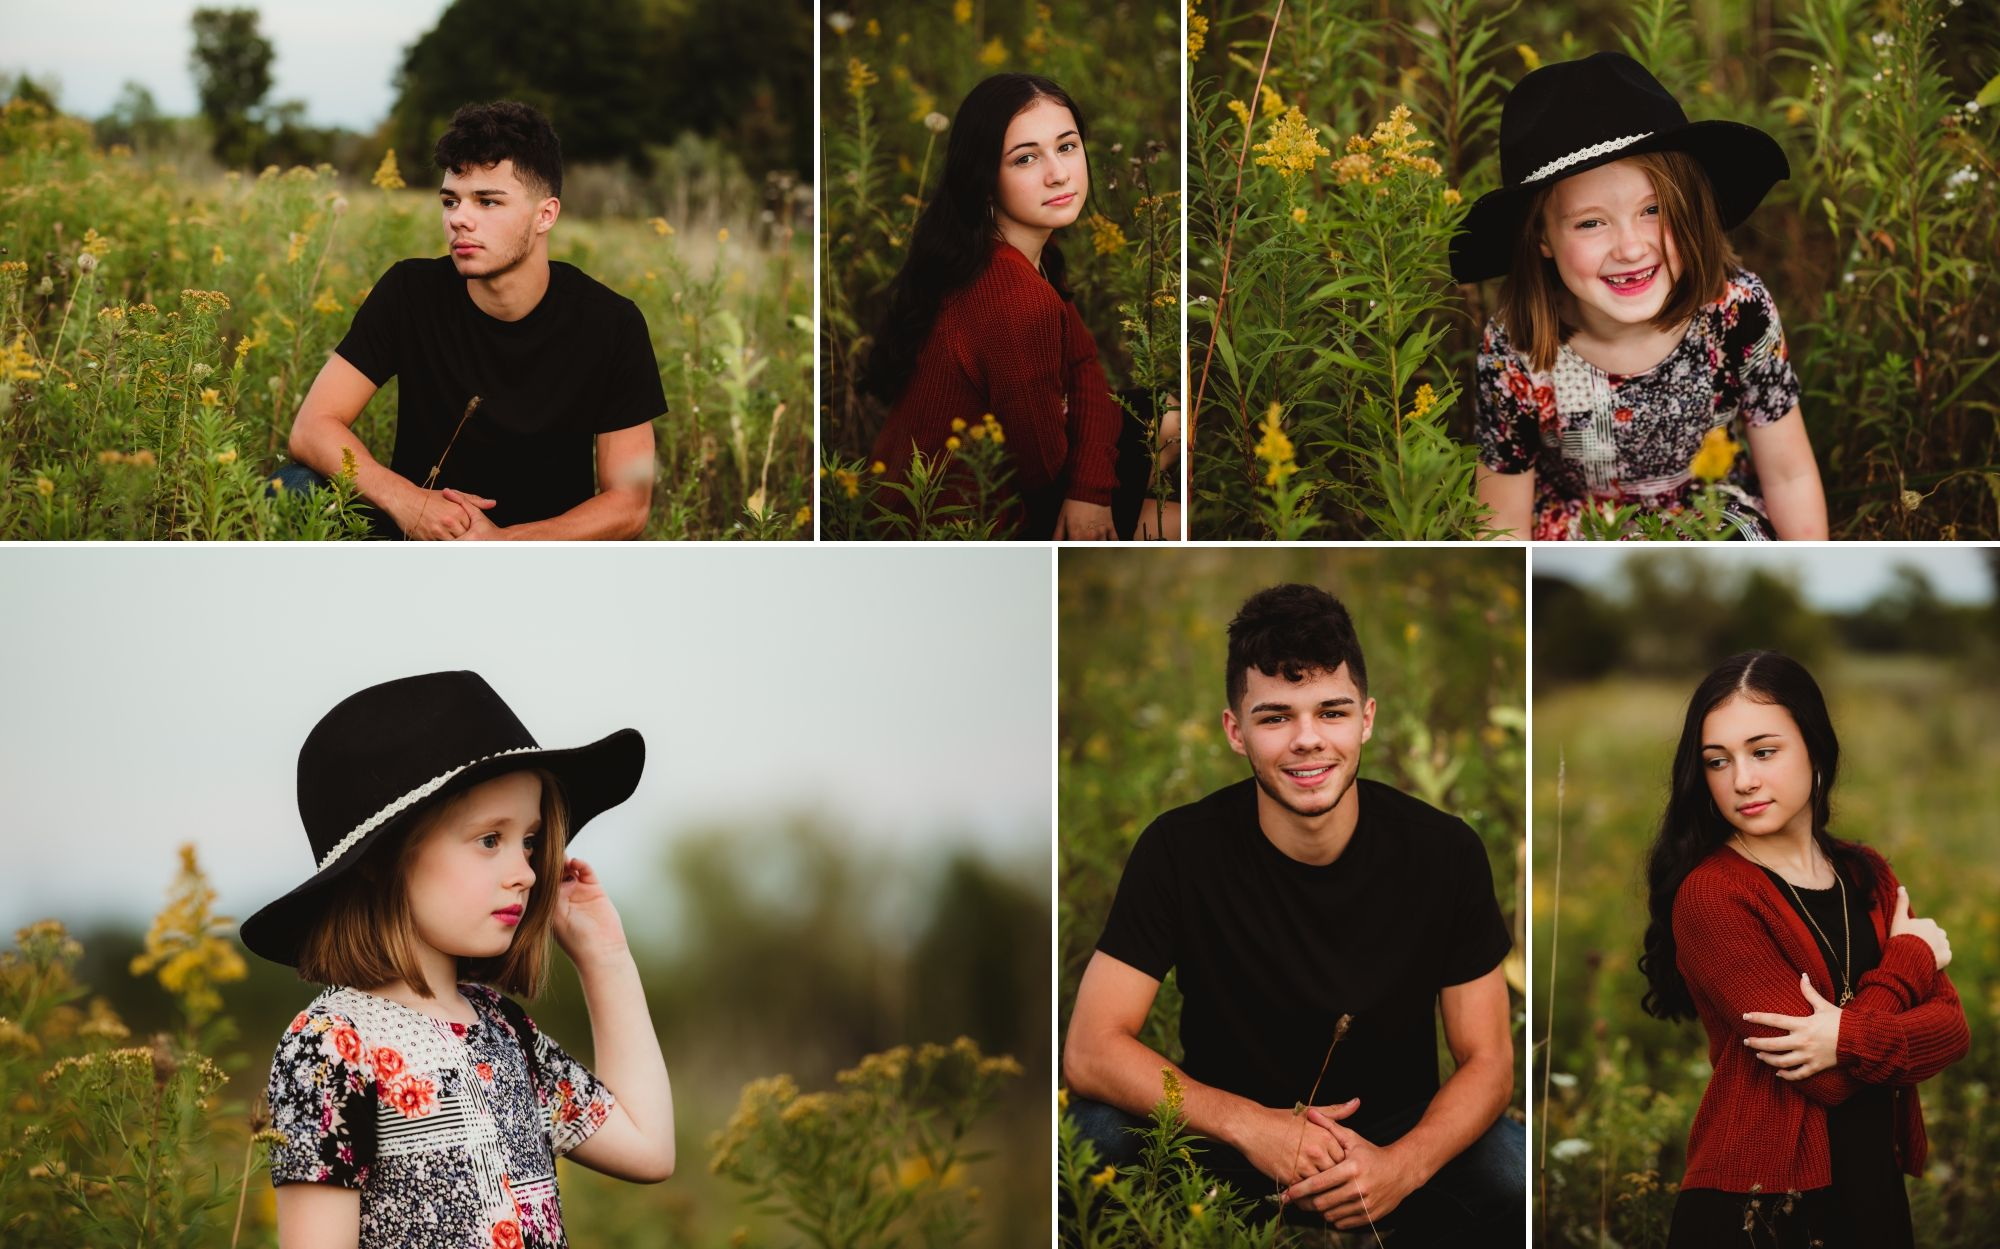 Collage of individual pictures of each child in a field of grass and goldenrod.